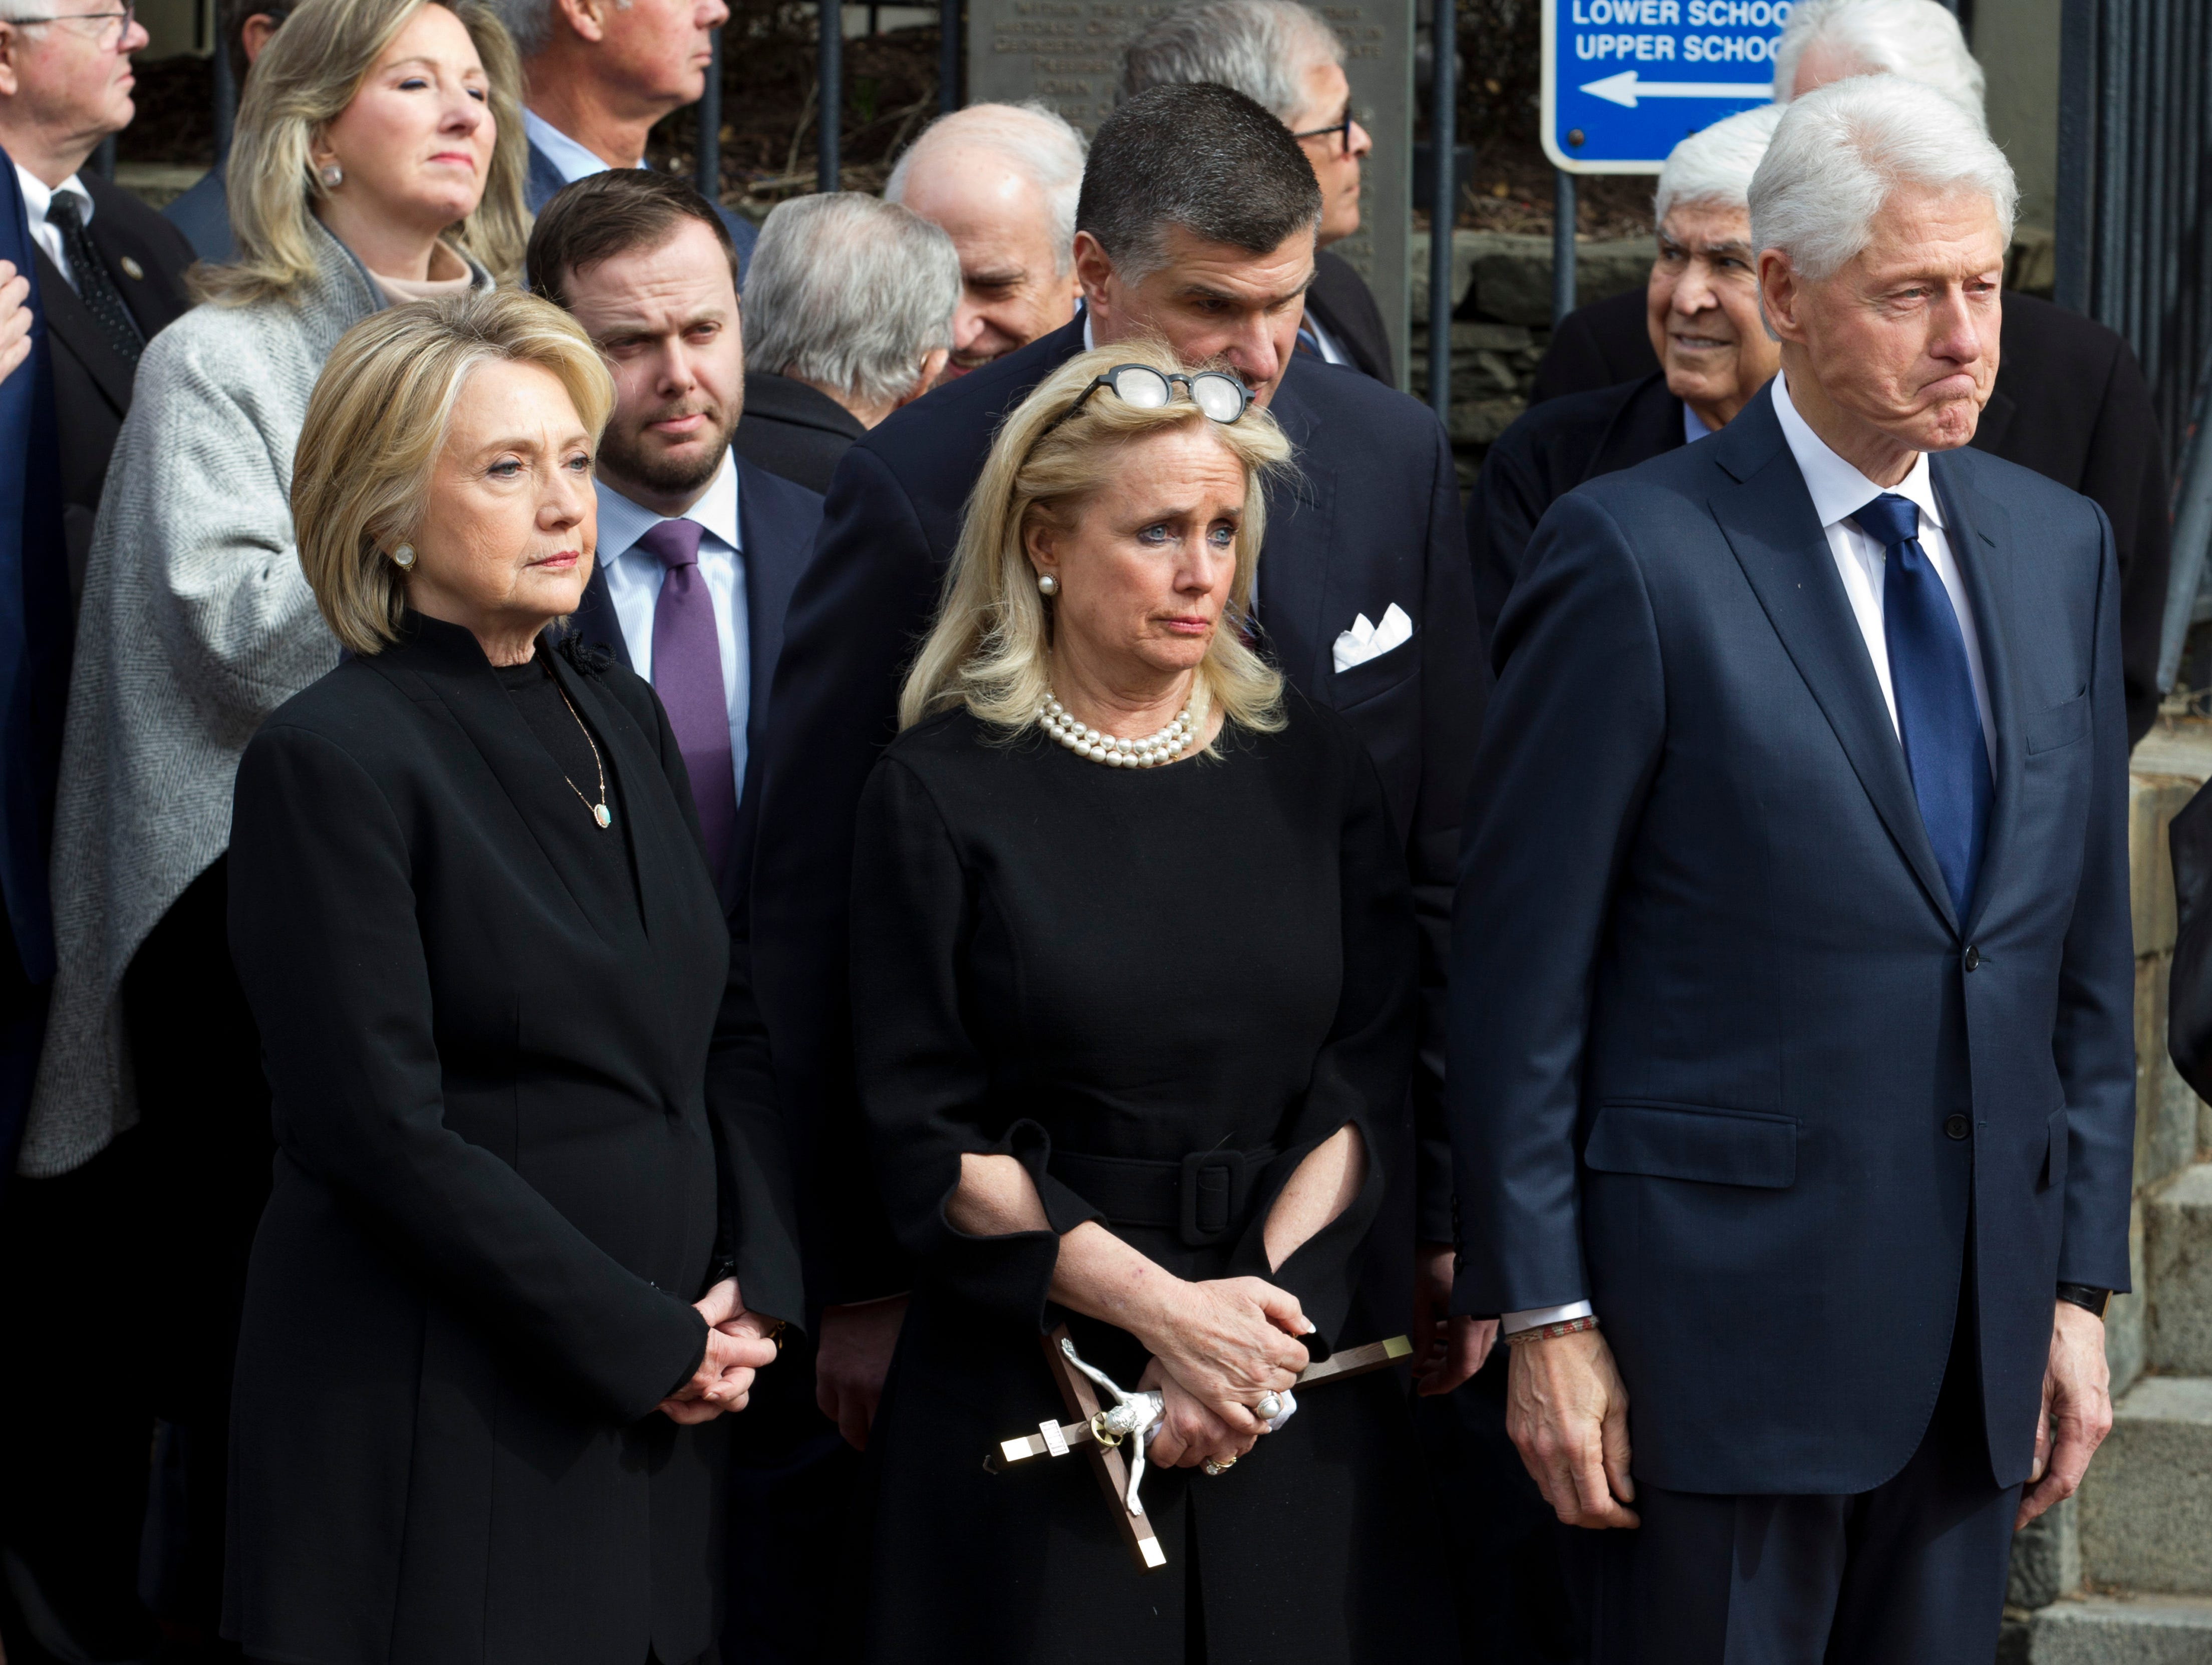 Rep. Debbie Dingell, D-Dearborn, center, accompanied by former President Bill Clinton and former first lady Hillary Clinton, watches the flag-draped casket of former Rep. John Dingell after the funeral at Holy Trinity Catholic Church, Thursday, Feb. 14, 2019, in Washington. Dingell, the longest-serving member of Congress in American history who mastered legislative deal-making and was fiercely protective of Detroit's auto industry, died at age 92.